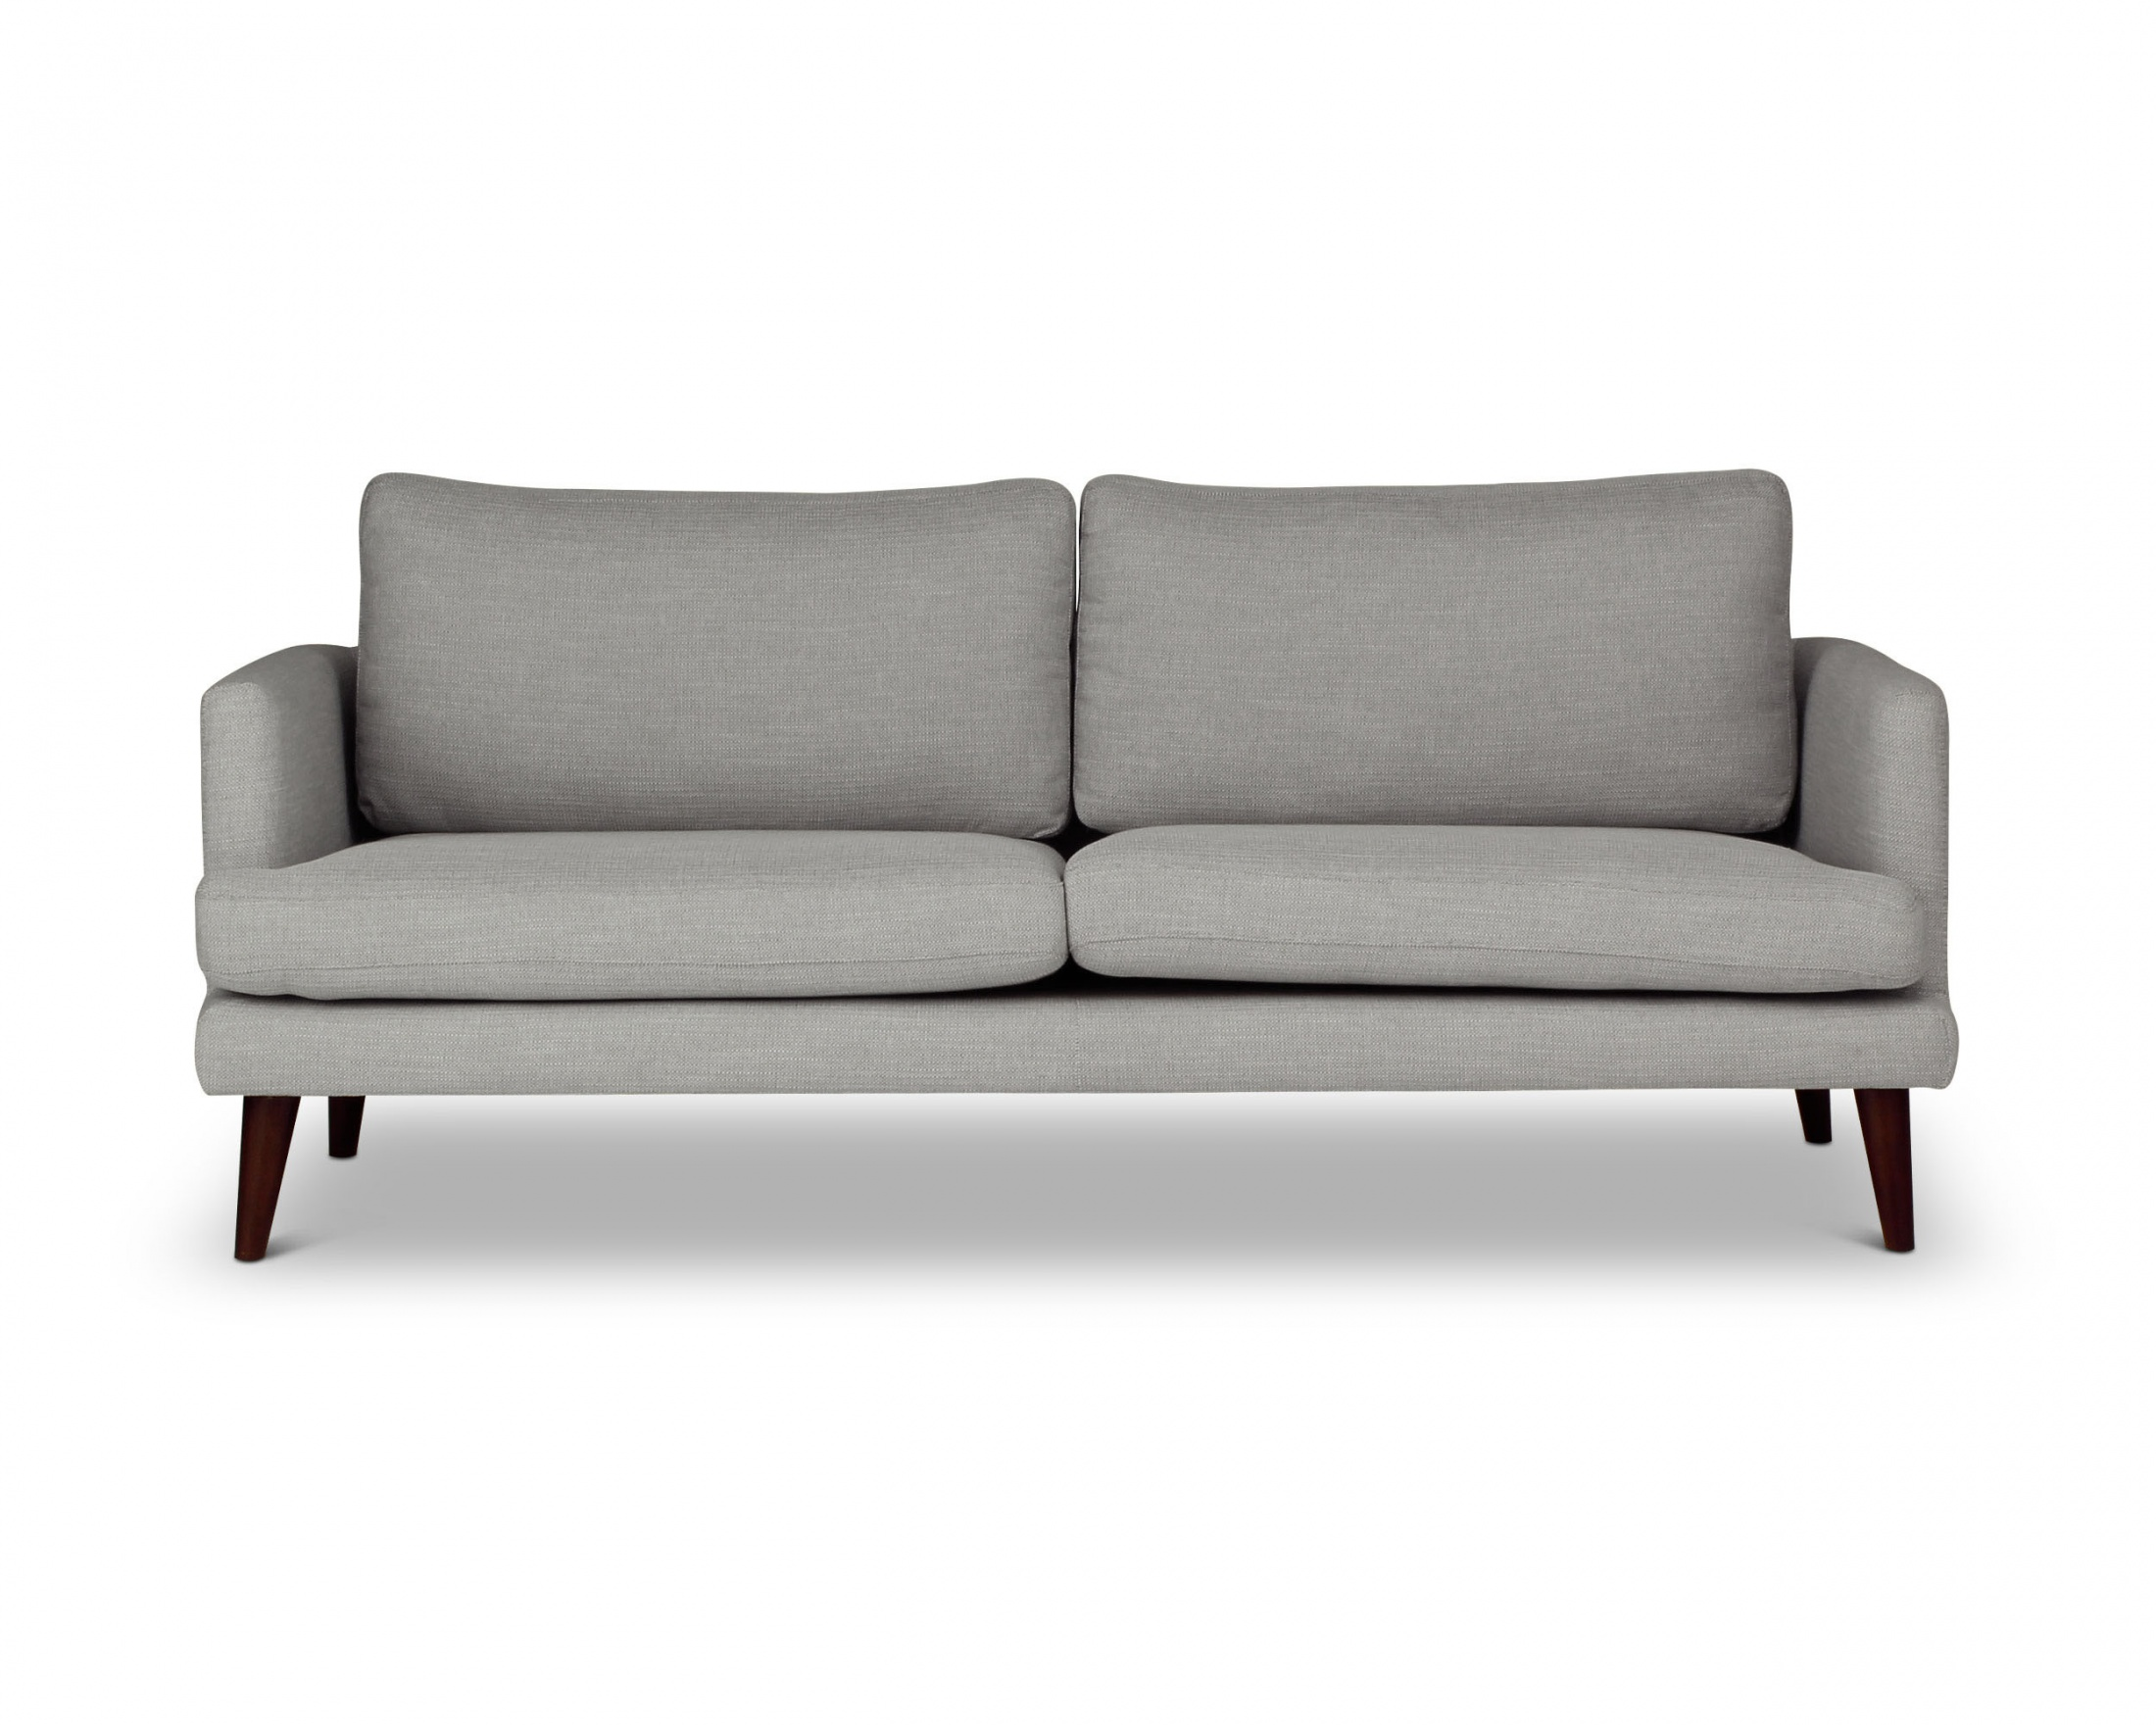 buy sectional sofa bed photo - 9